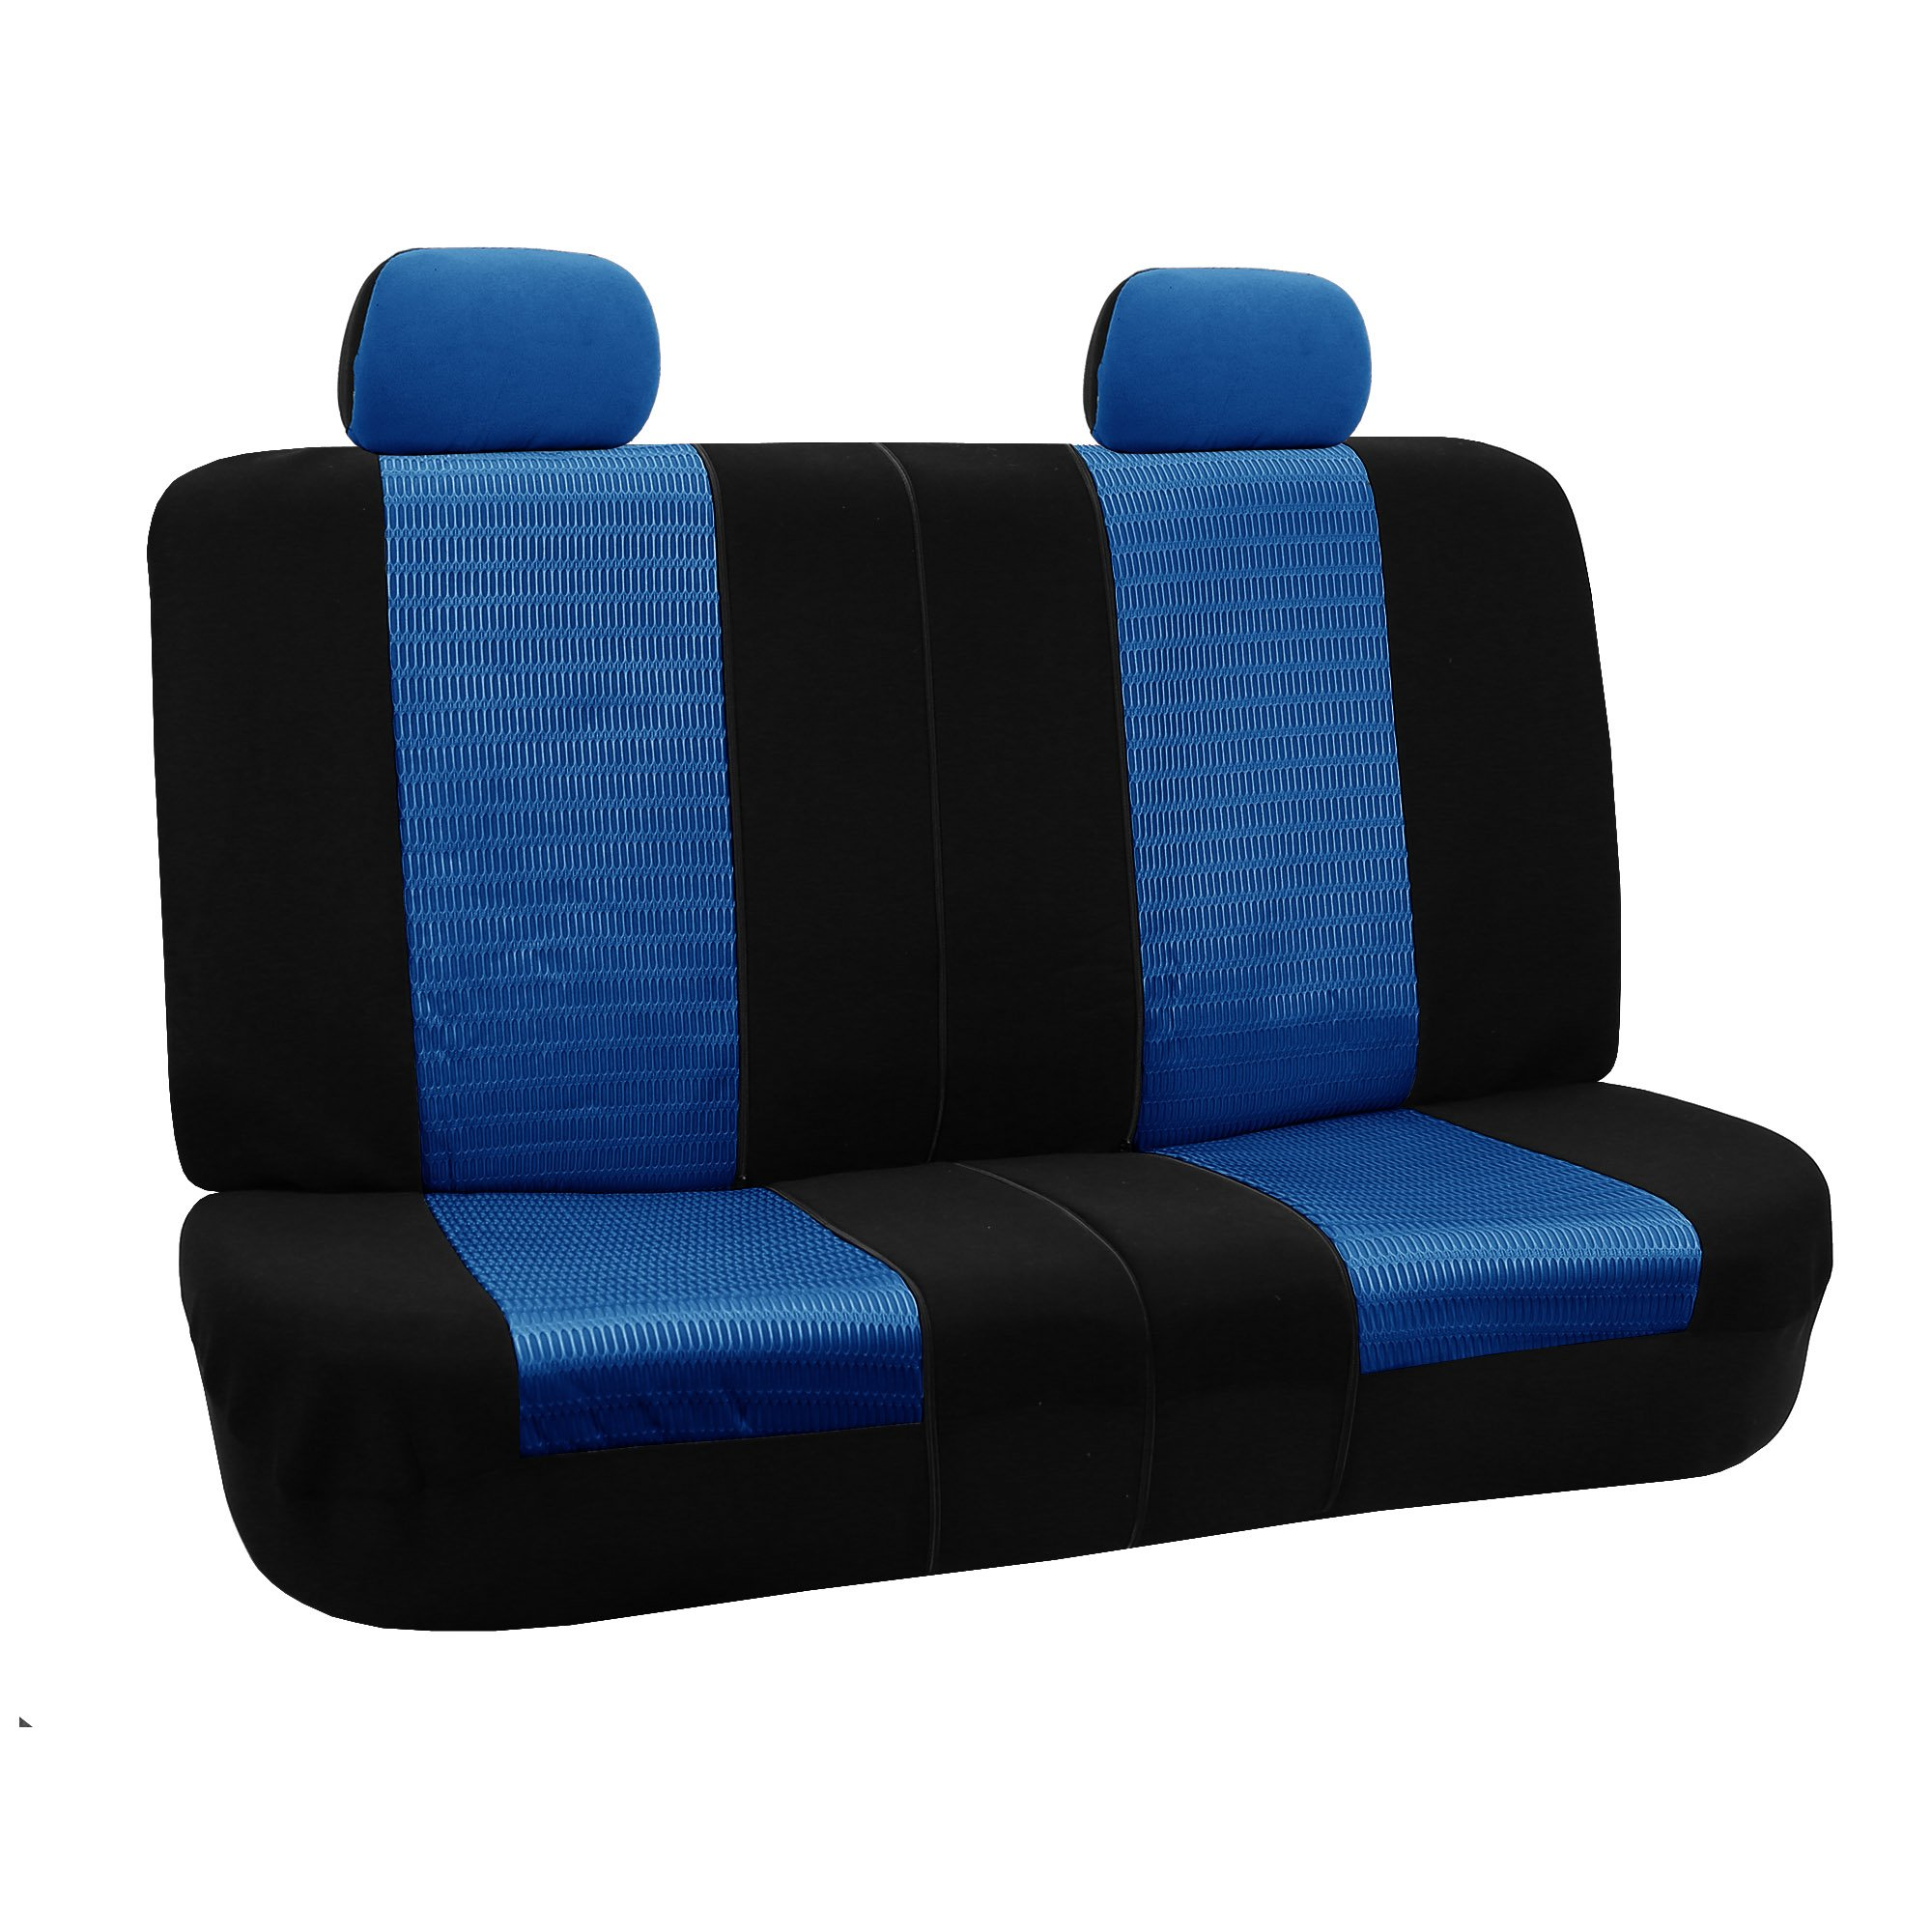 FH GROUP FH-FB060R012 Trendy Elegance Bench Seat Covers, Airbag Compatible and Split Bench, Blue/Black Color by FH Group